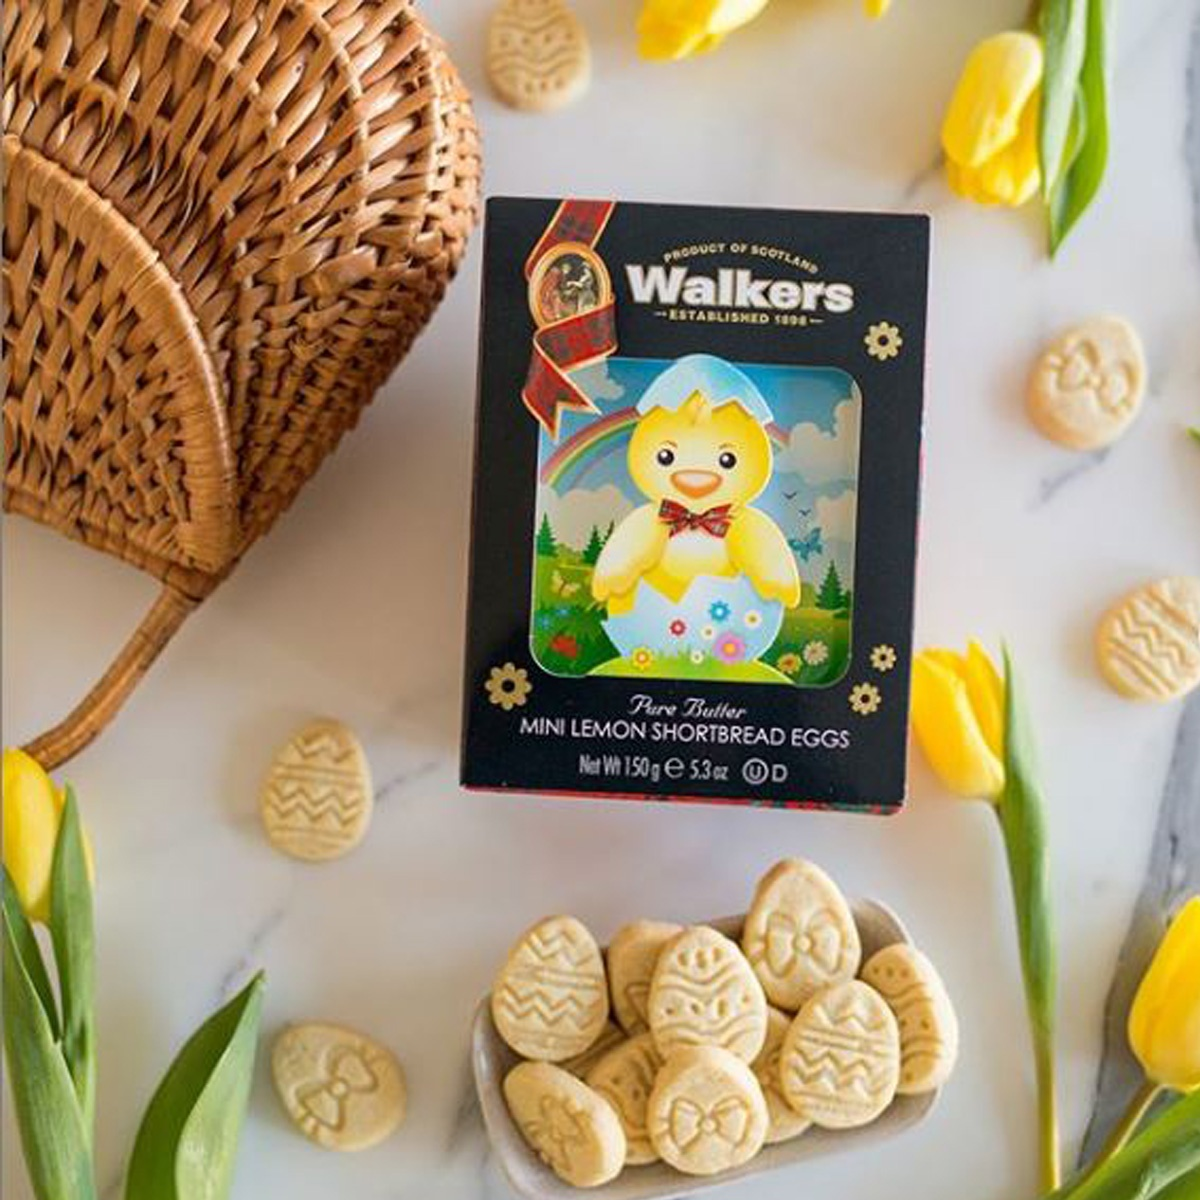 Top Food Feinkost - Walkers Shortbread - Ostern